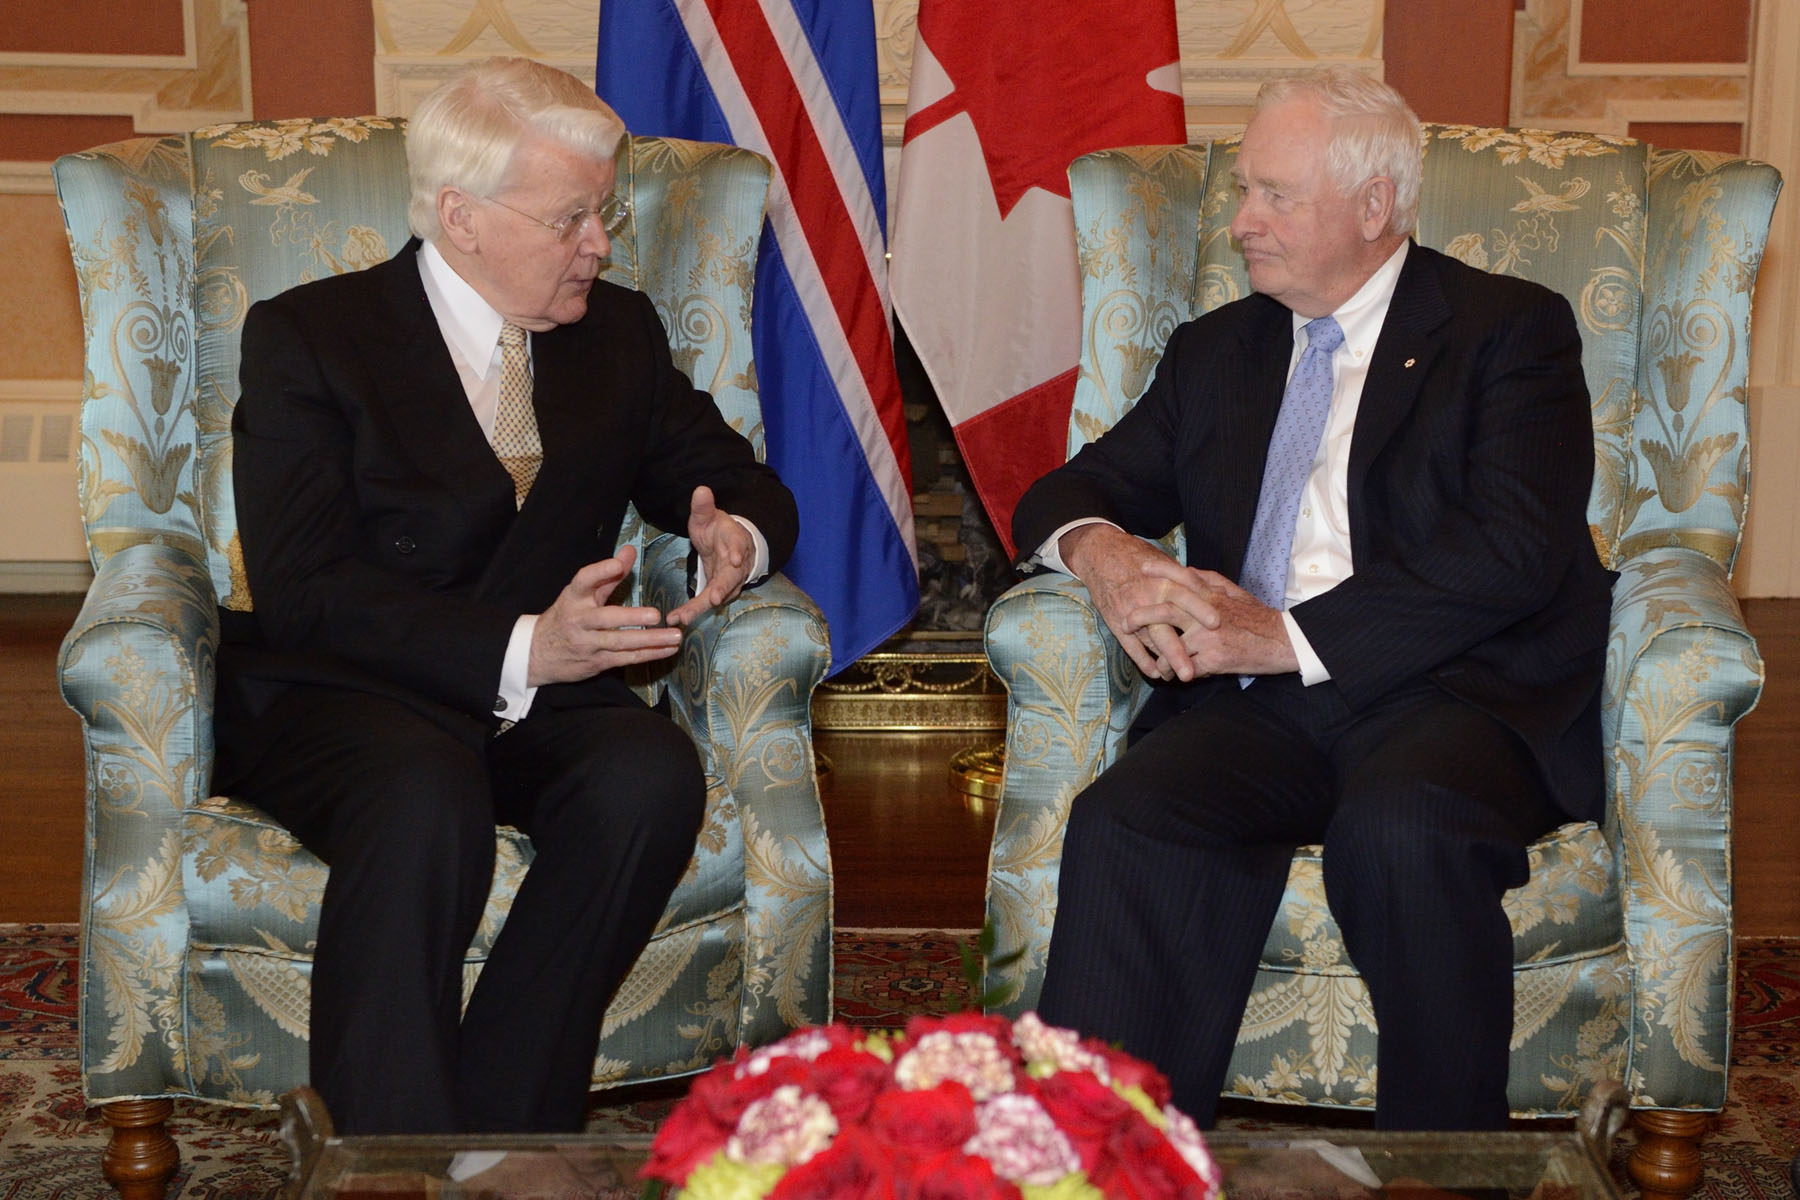 The Governor General and the President of Iceland discussed Canada and Iceland's mutual interests.